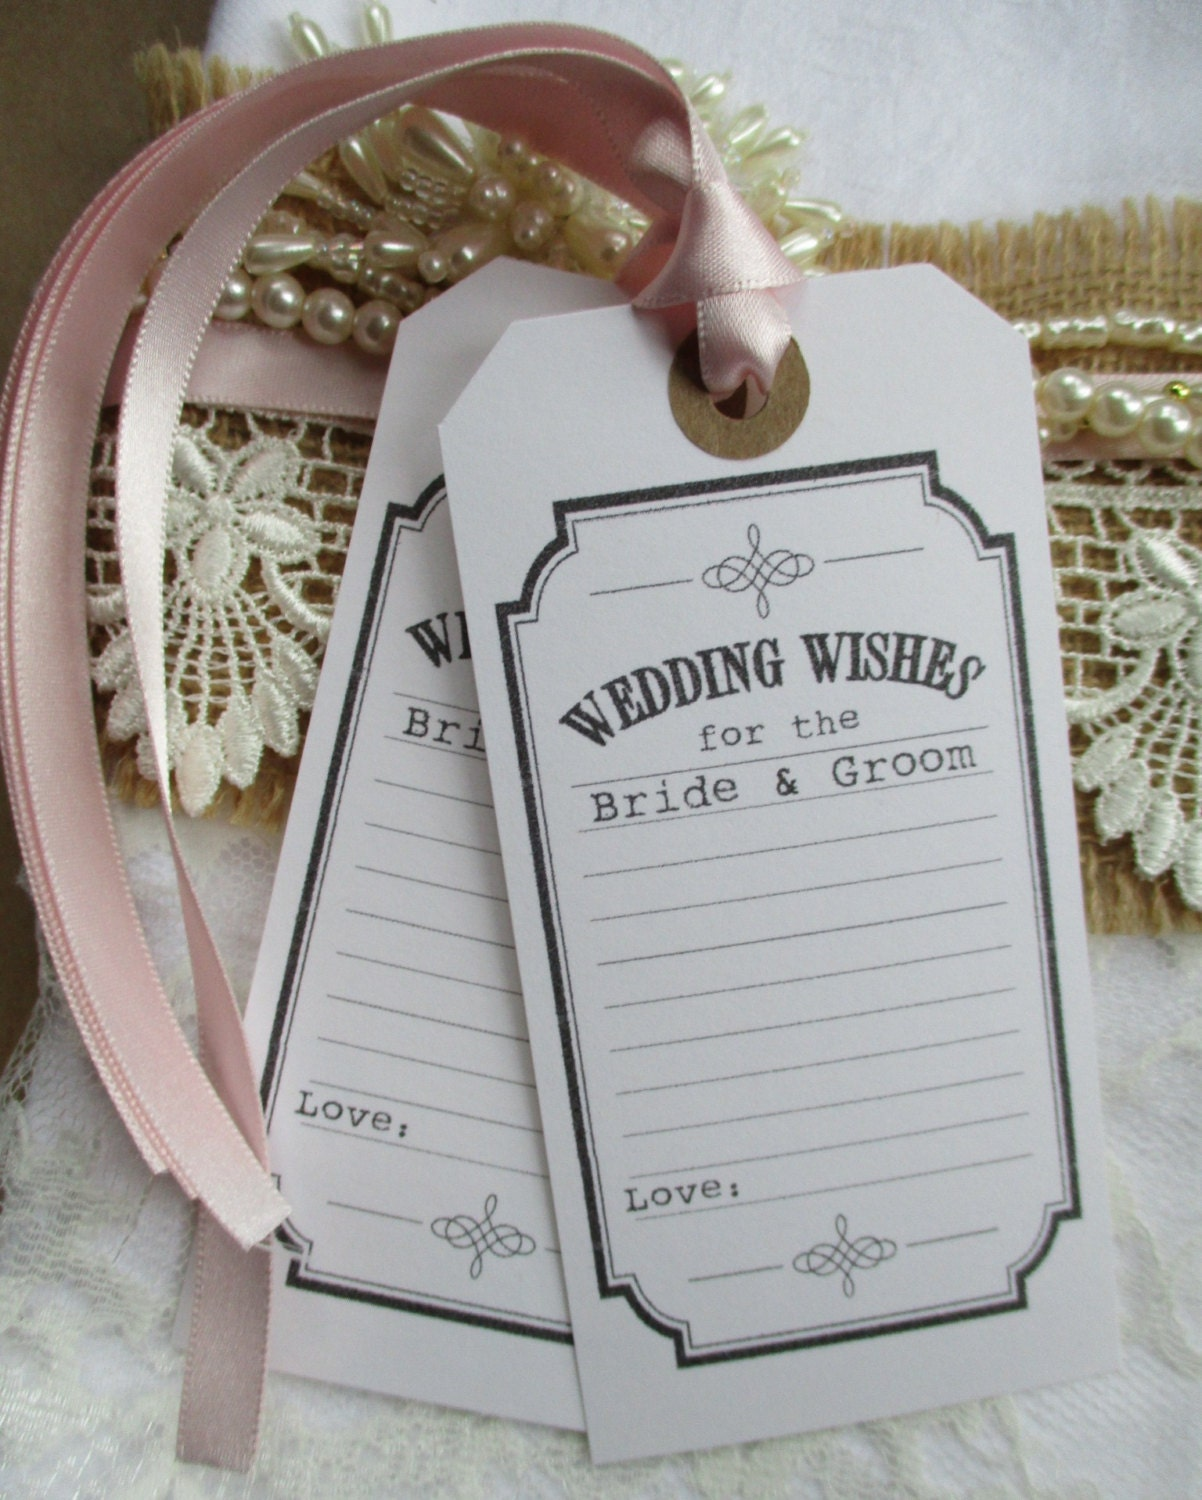 Wedding Wish Tag Ticket Style Wedding Wishes For the Bride &